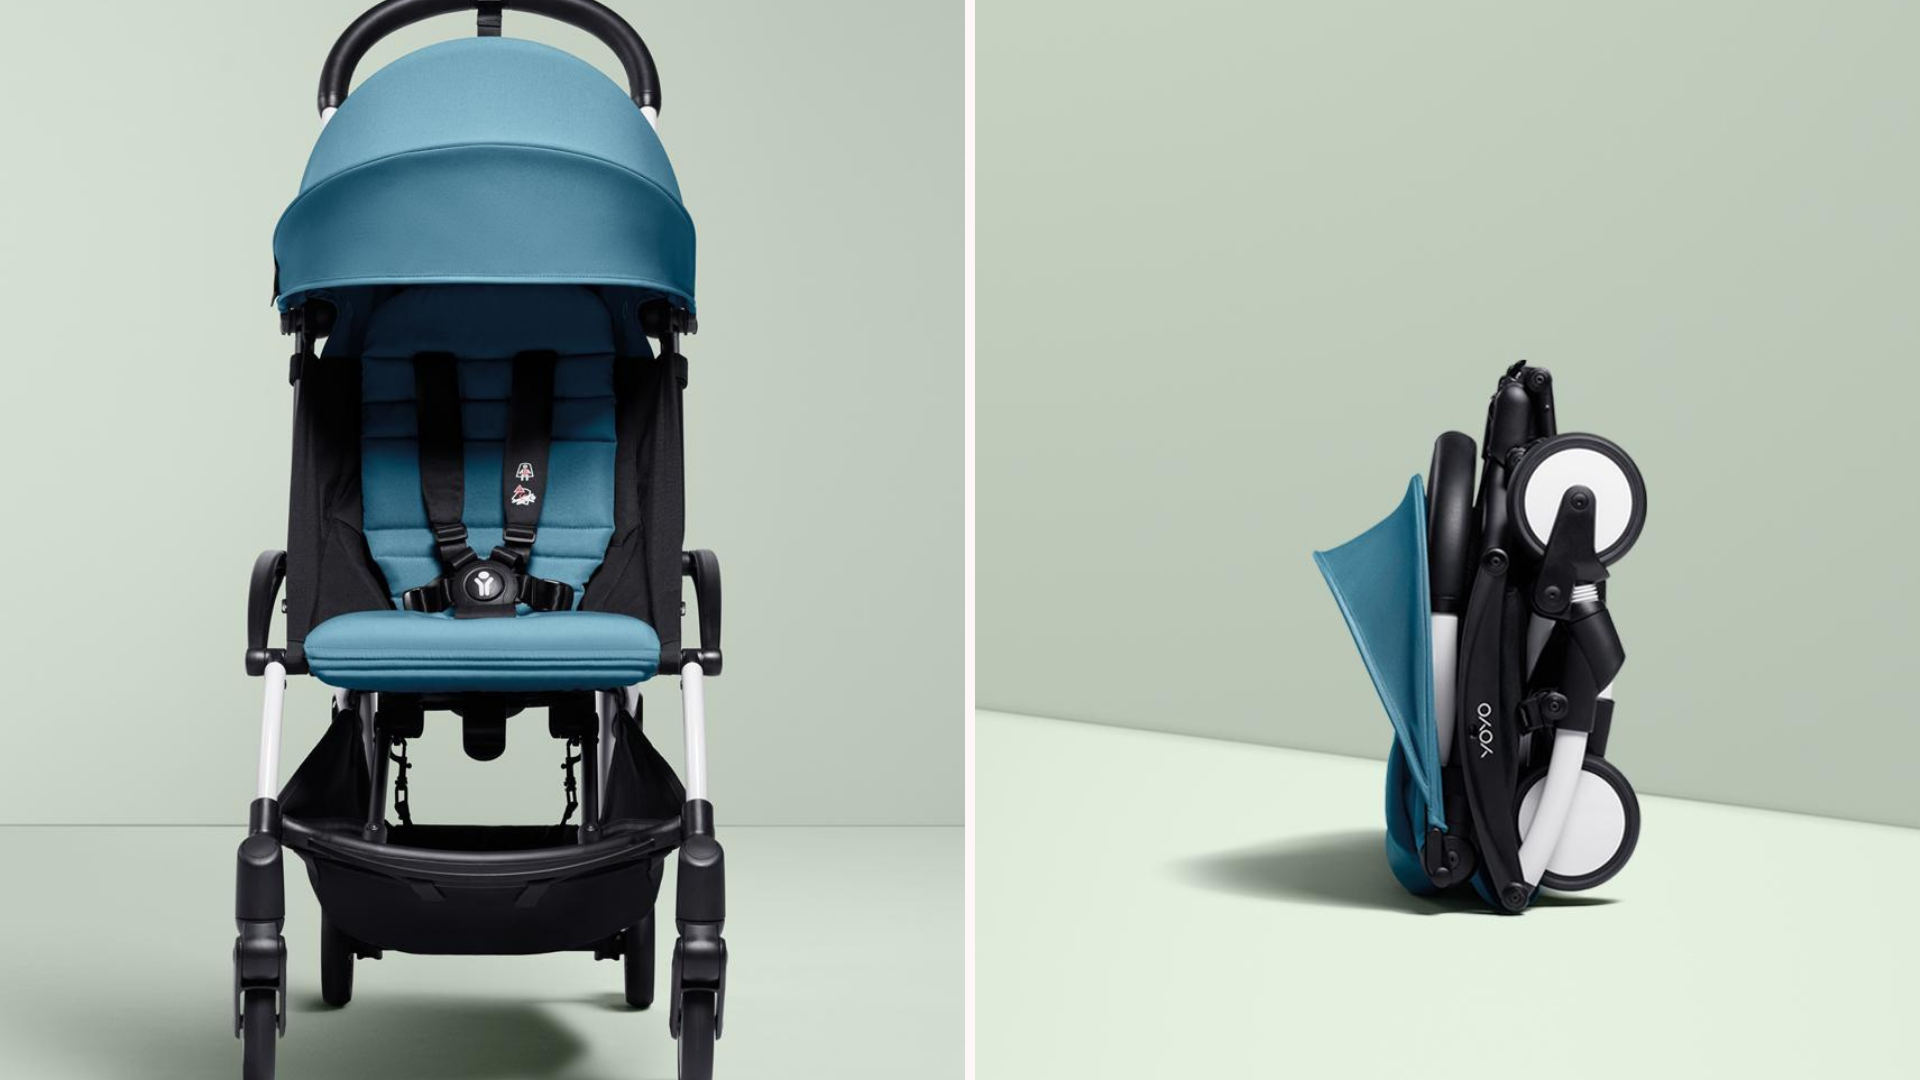 A Babyzen folding stroller in the open and closed positions.